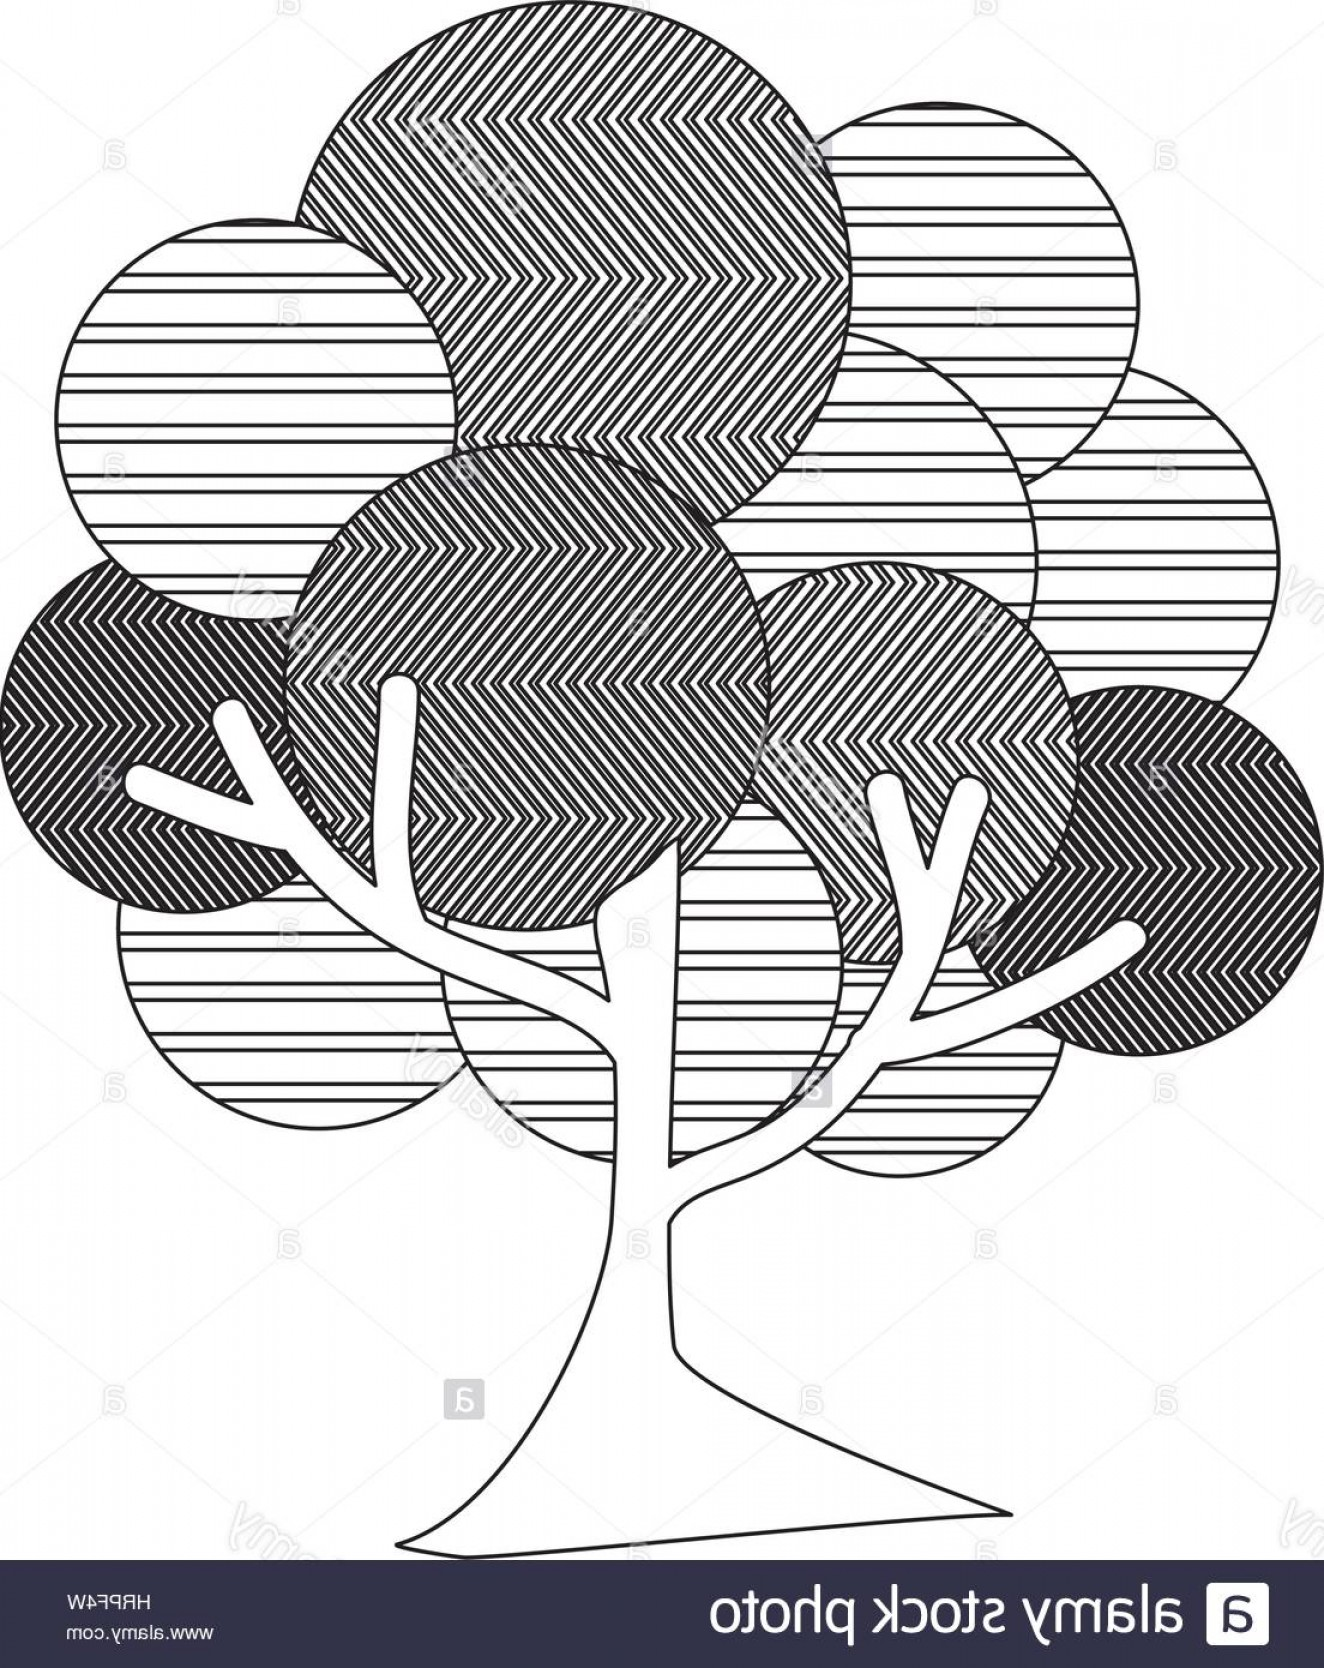 Tree Abstract Line Art And Vector: Stock Photo Monochrome Silhouette Leafy Tree Plant With Abstract Lines And Thin